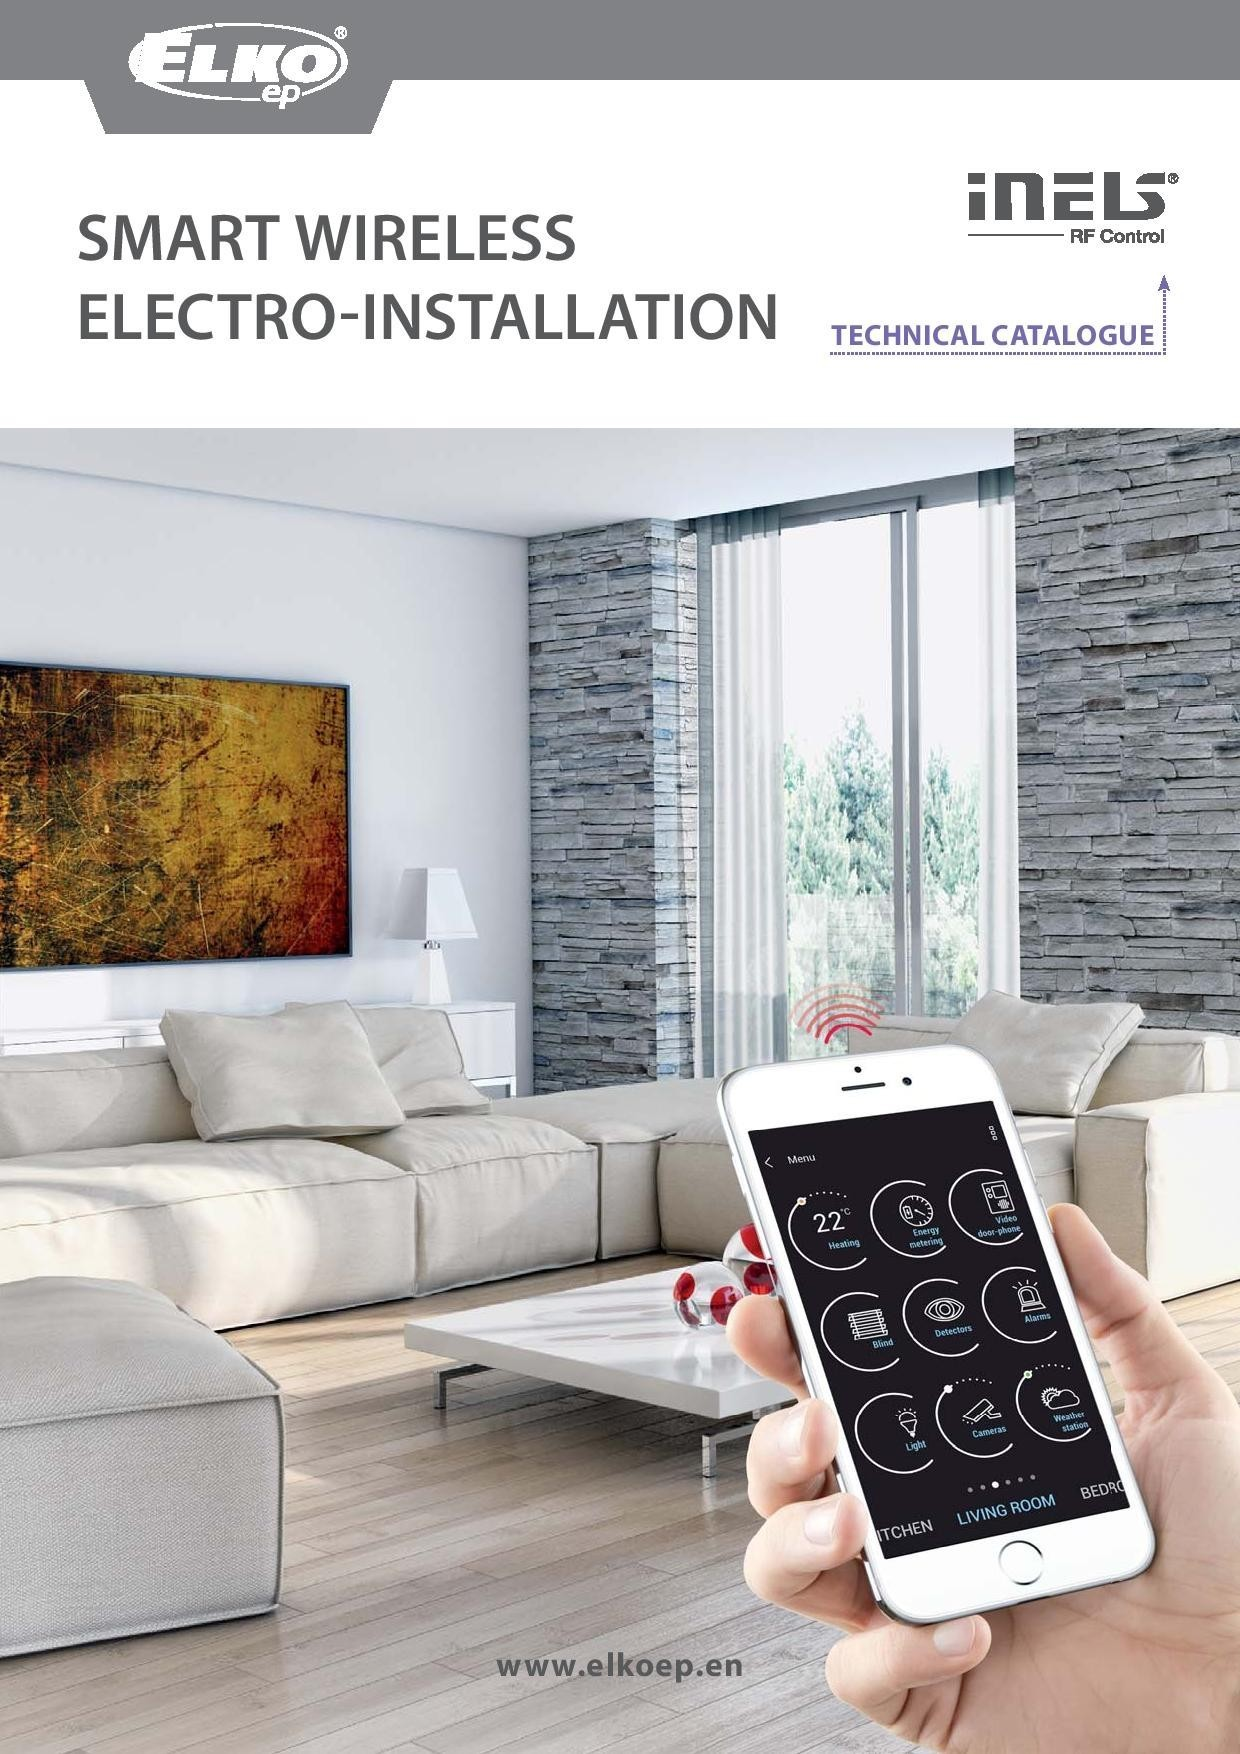 Smart wireless electro-installation preview